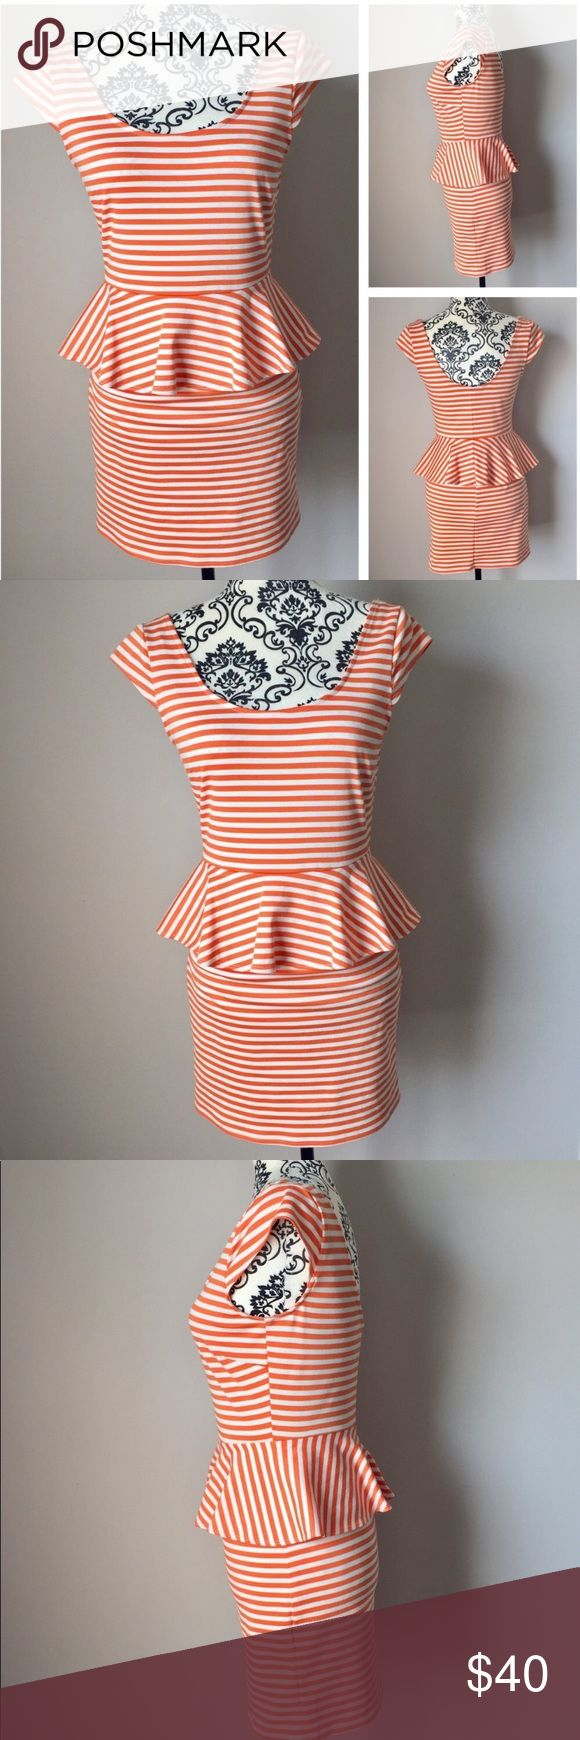 "NWOT orange off-white striped peplum midi dress NWOT orange and off-white striped peplum midi dress. Adorable cap sleeves. Scoop back for a sexy look. Waist measures approximately 13"" laid flat. Length from top of shoulder to hem is approximately 30"". Armpit to armpit approximately 16"". 81% polyester / 16% rayon / 3% spandex is smooth and comfortable with a little stretch. Machine wash. Never worn or washed! Speechless Dresses Midi"